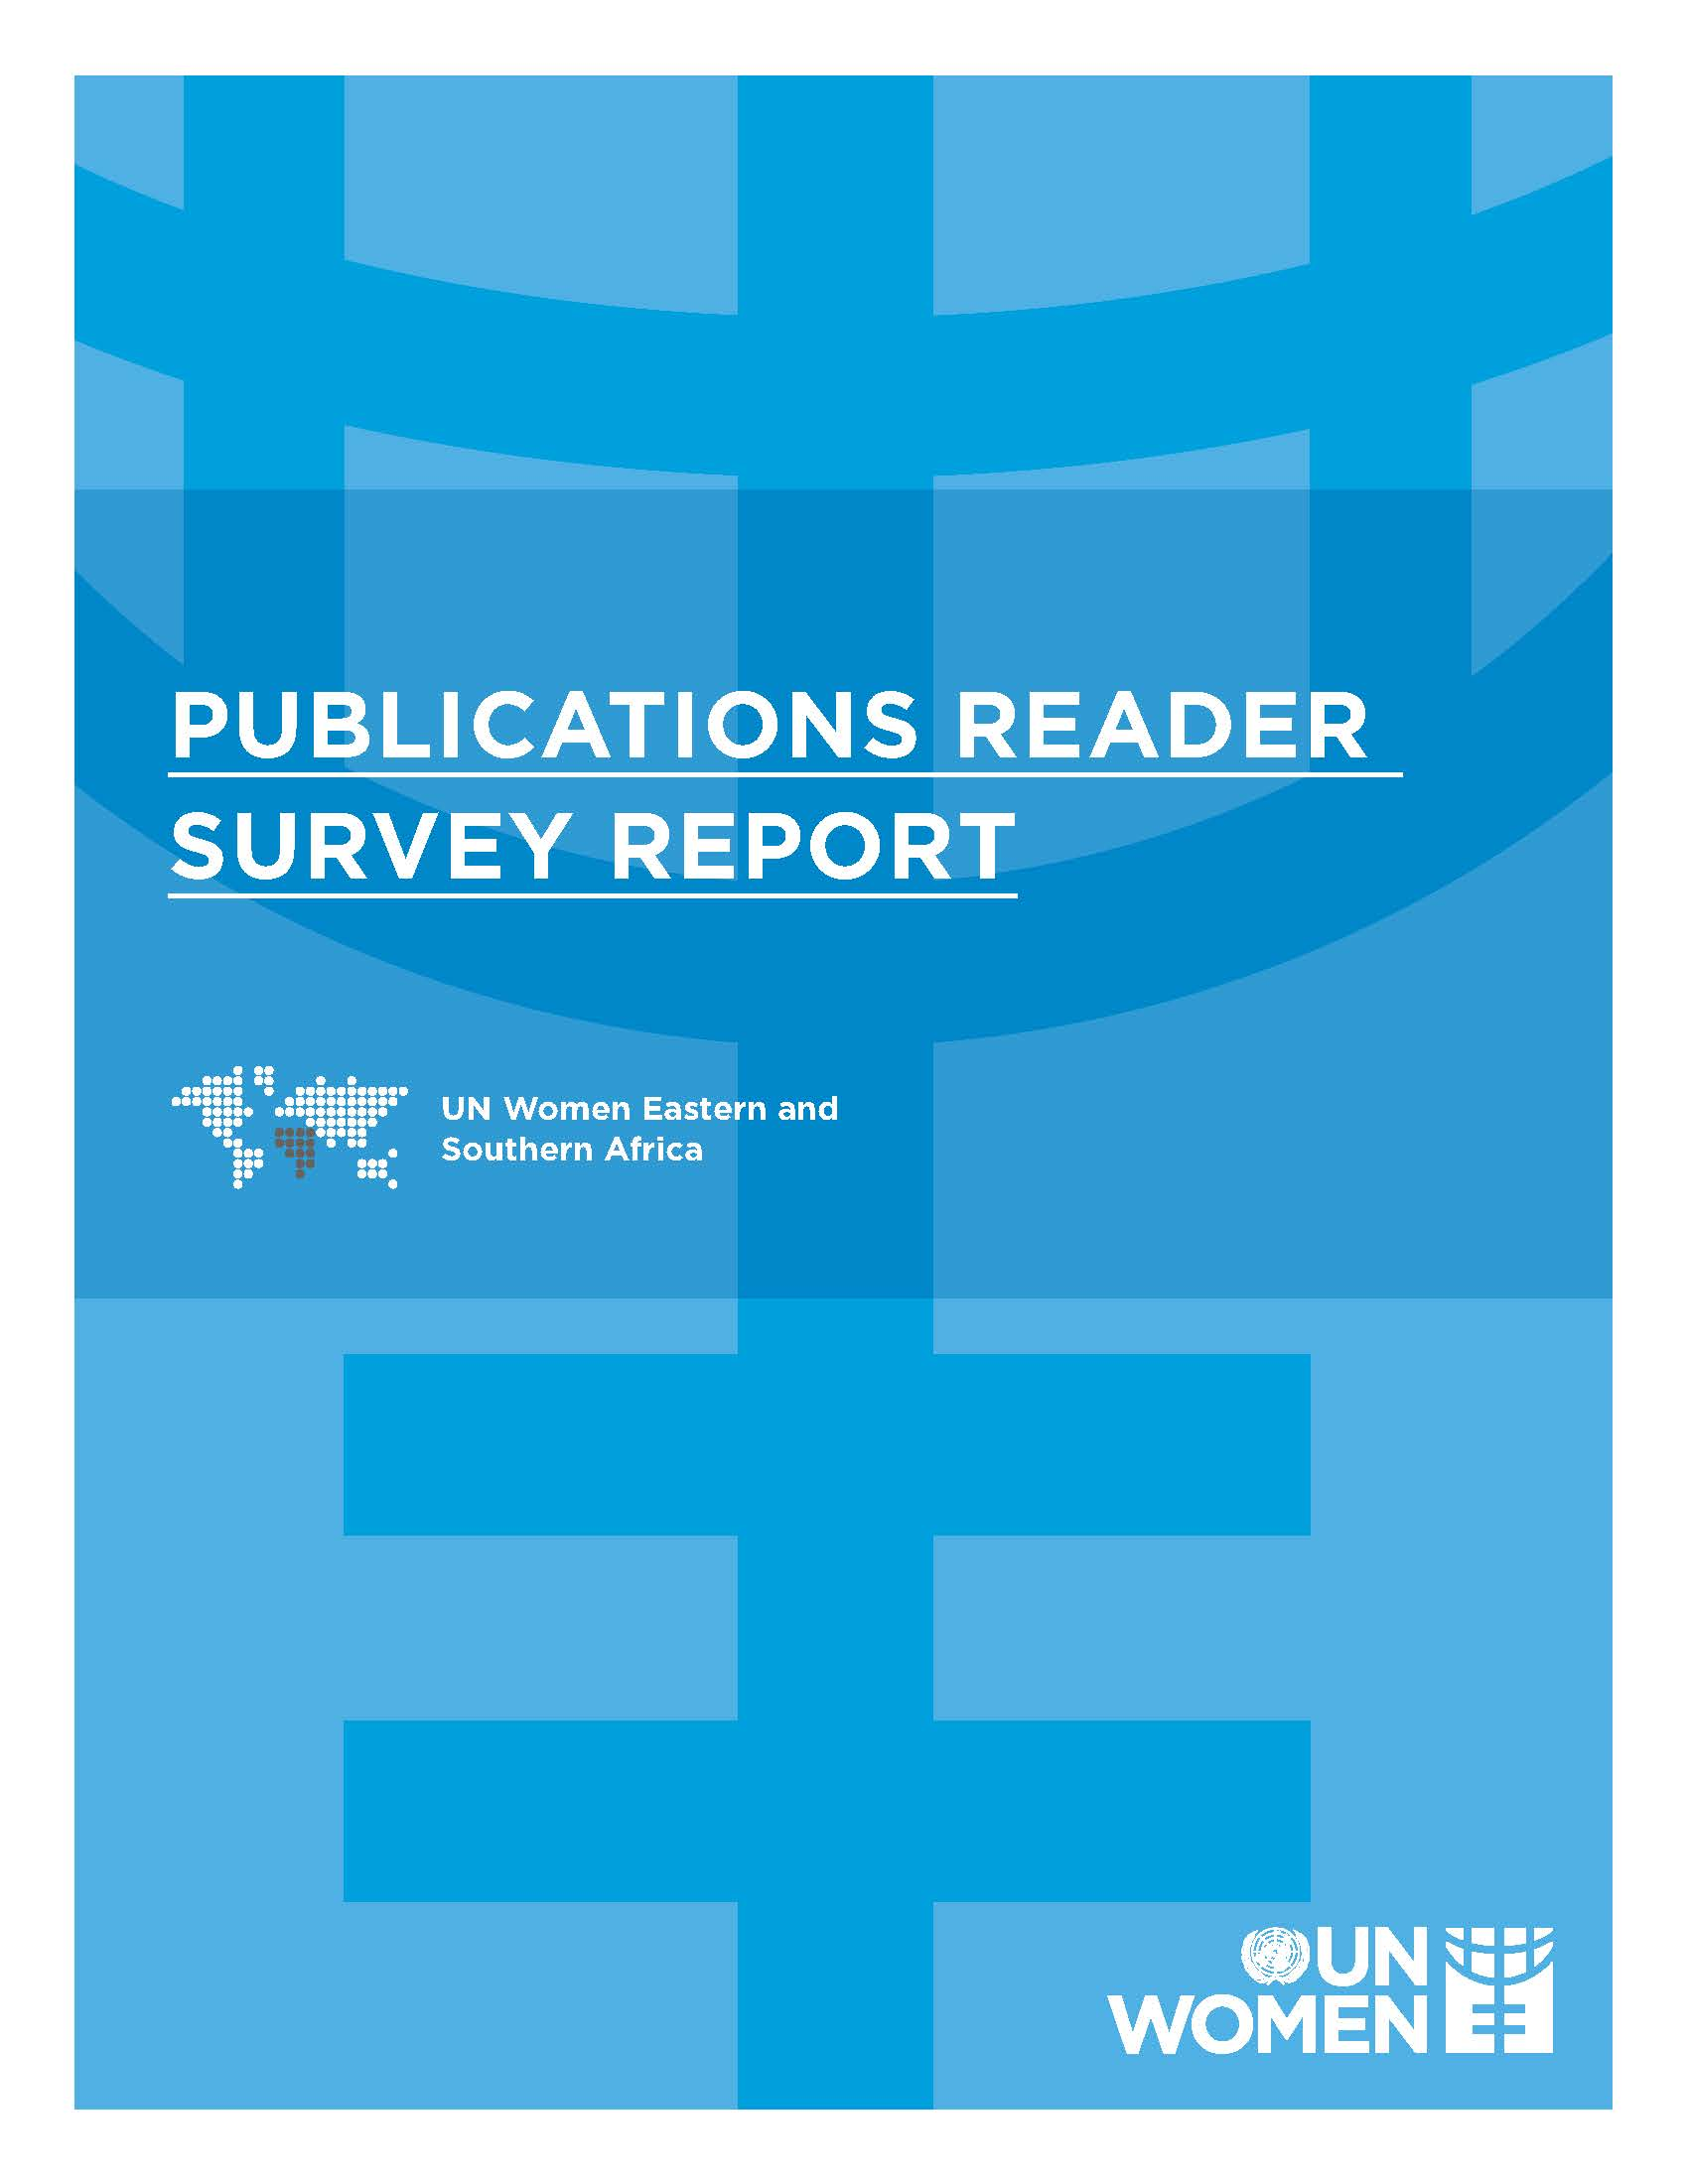 UN Women Eastern and Southern Africa Publications Reader Survey Report